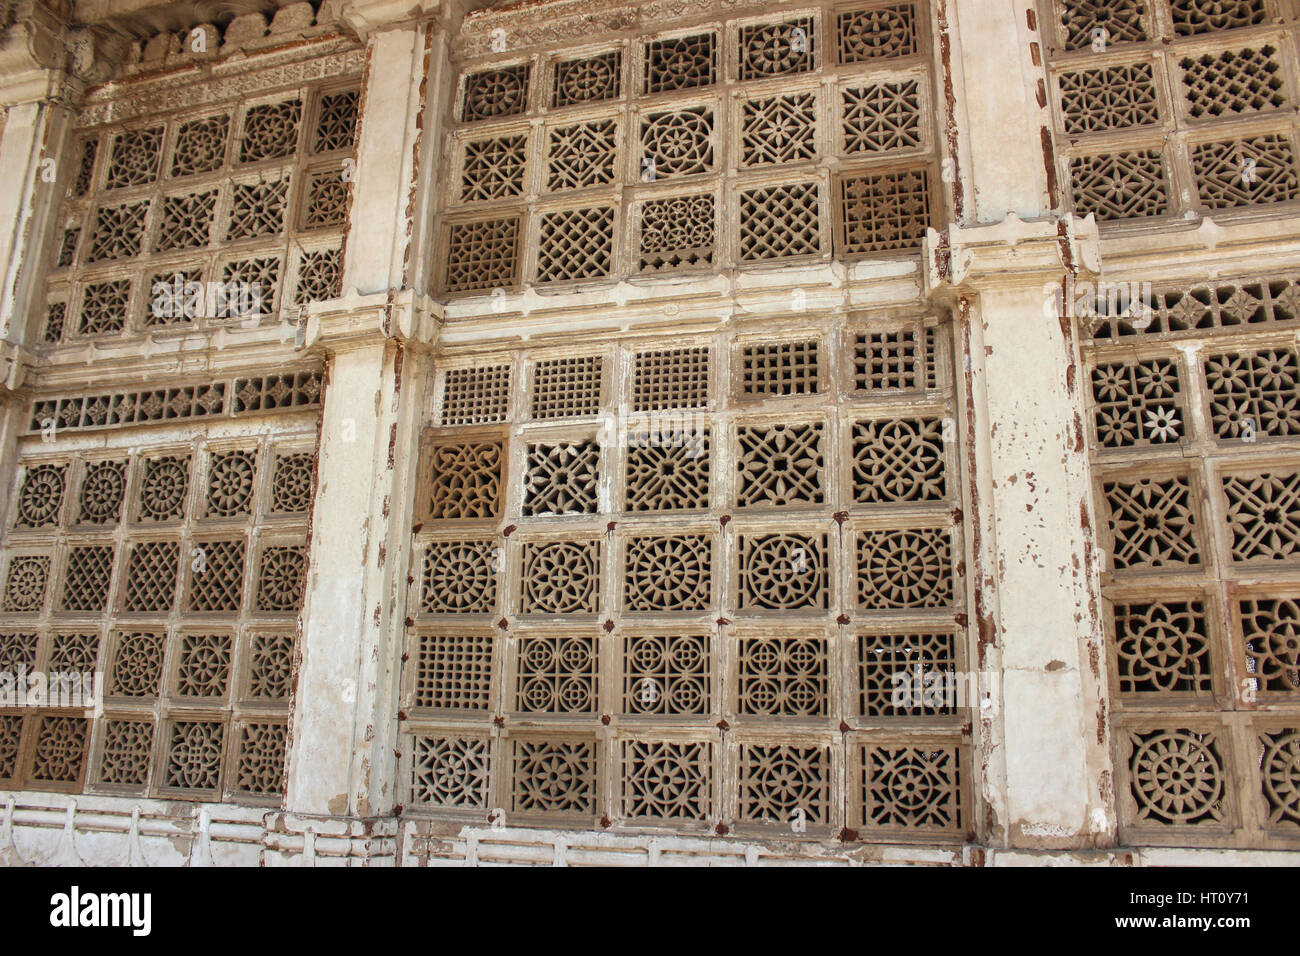 Perforated stone work at the exteriors of Sarkhej Roza, Makarba, Ahmedabad, Gujarat, India - Stock Image